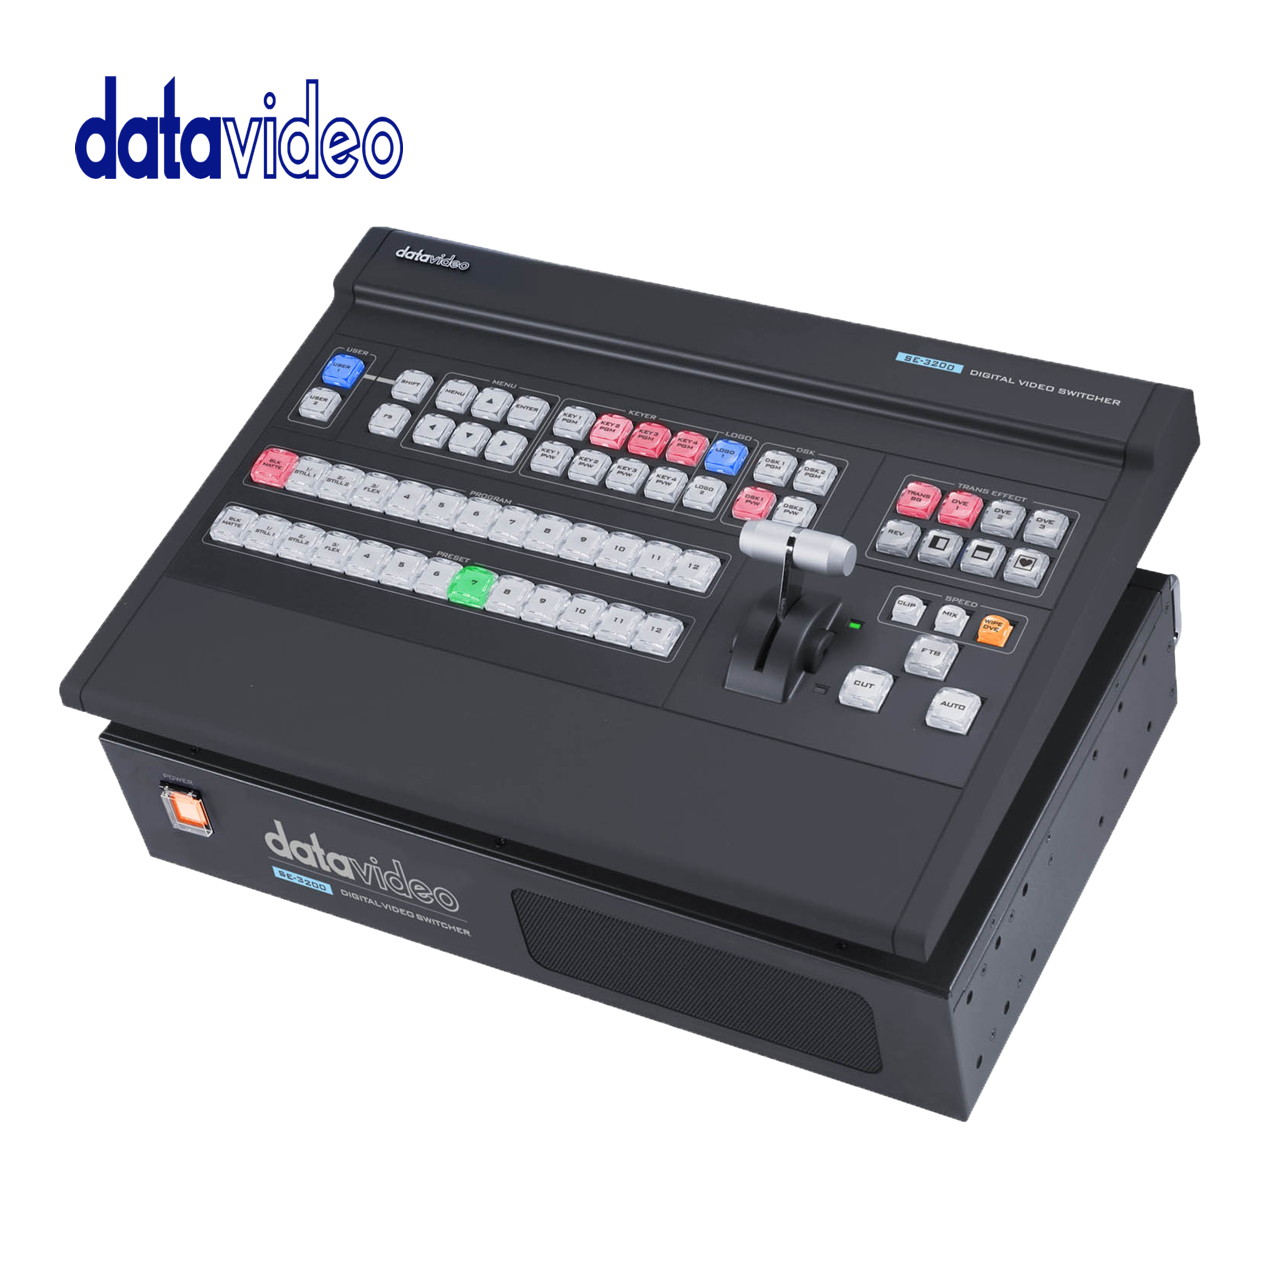 Datavideo's Most Advanced 12 Input 1080P 50/60 Switcher